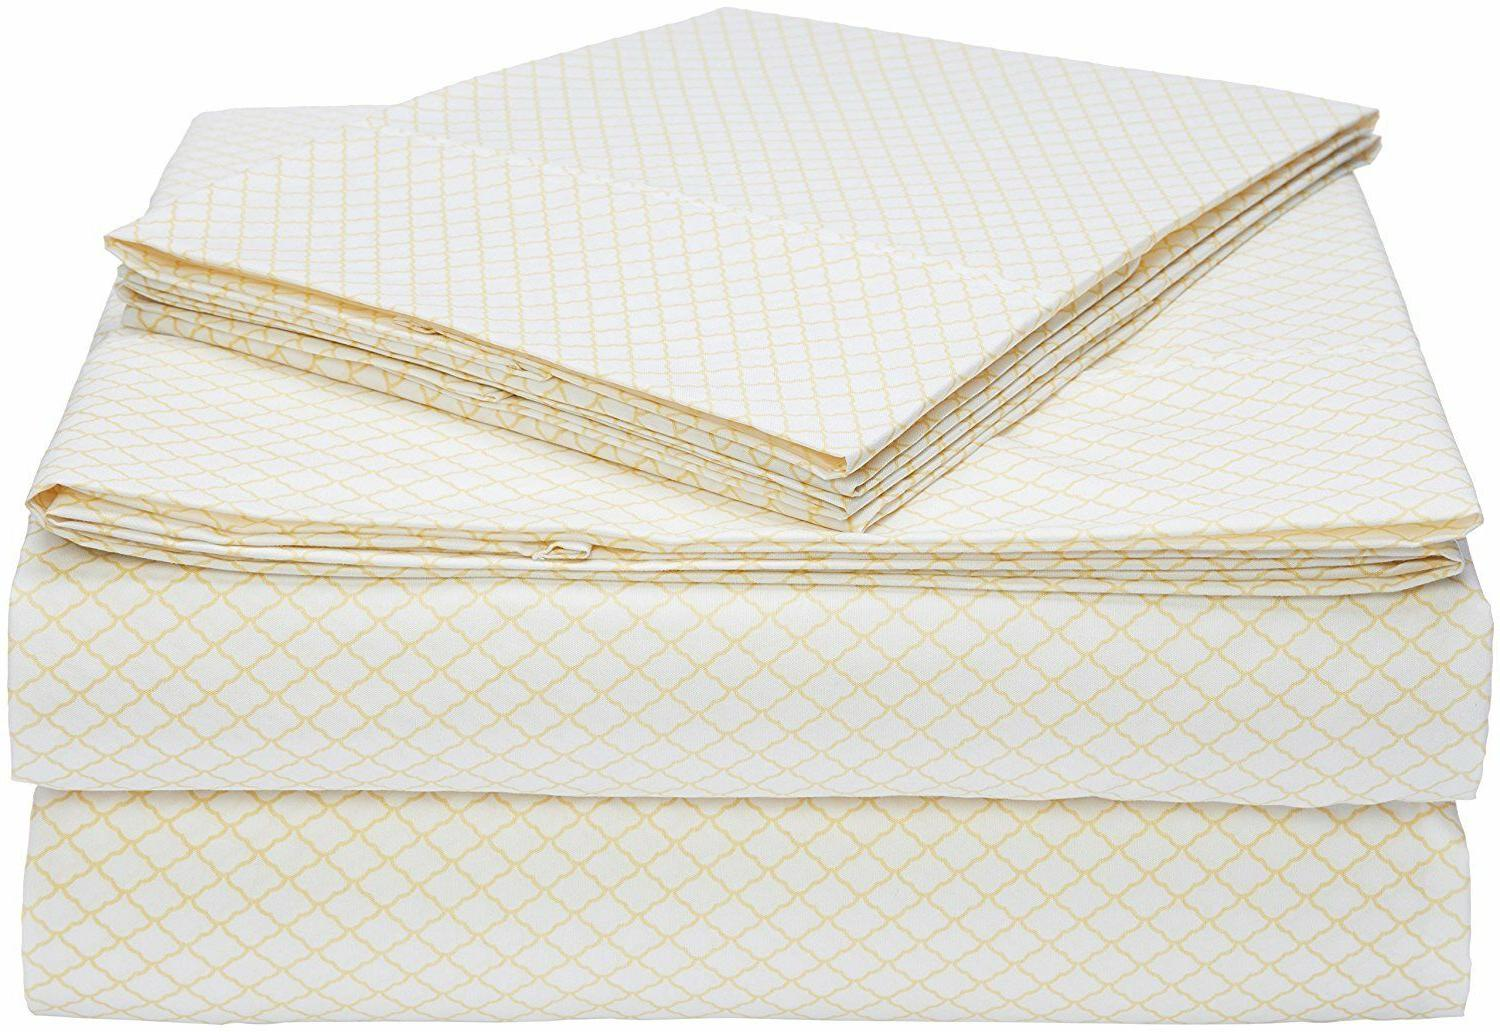 AmazonBasics Microfiber Sheet Set - Queen, Yellow Scallop